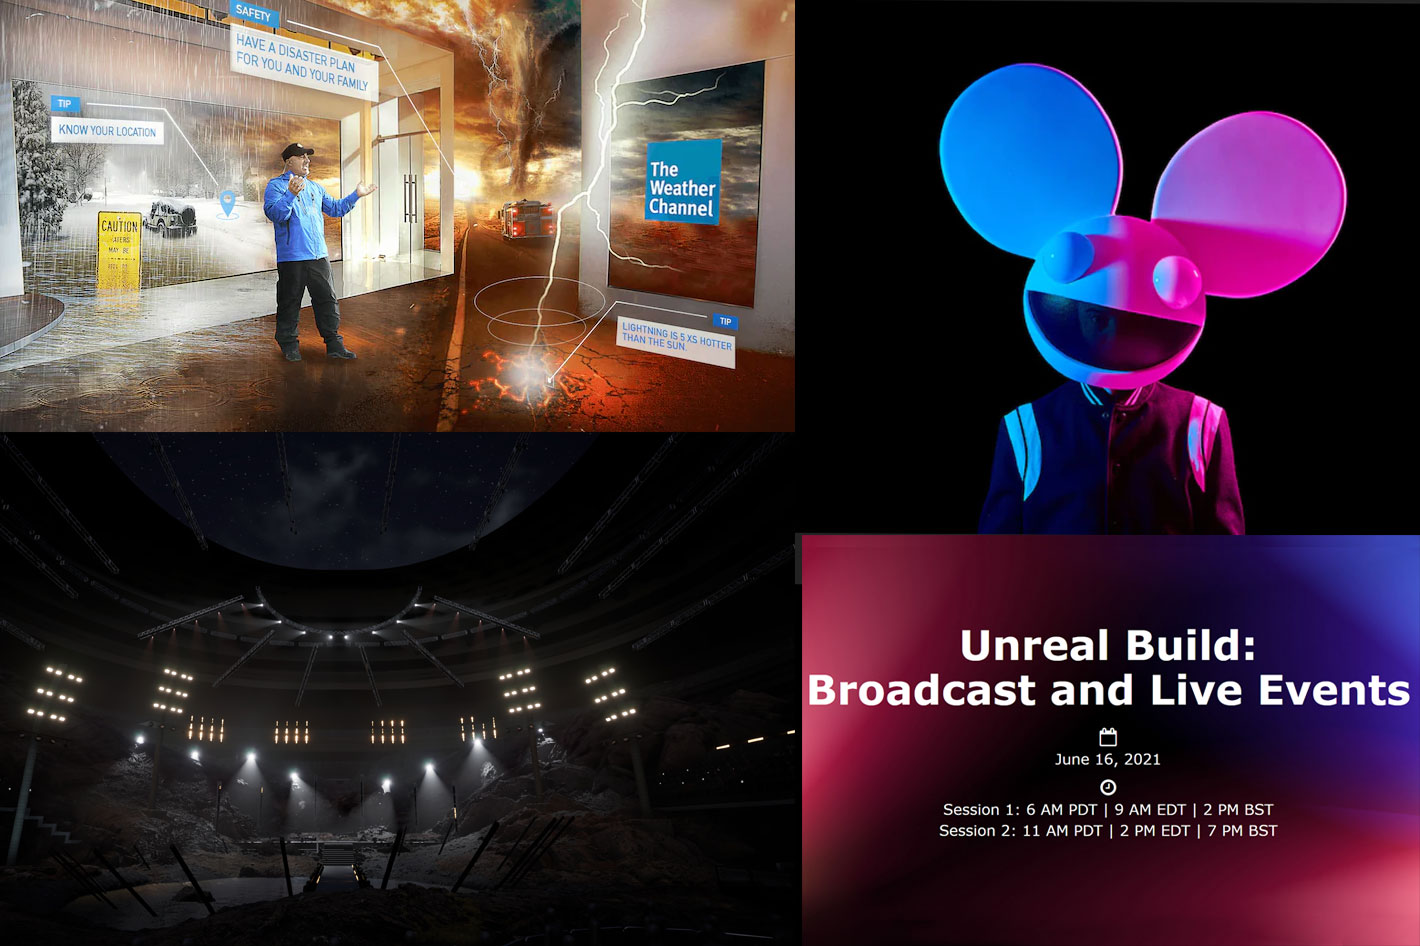 Unreal Build: Broadcast & Live Events, a free virtual event on June 16th